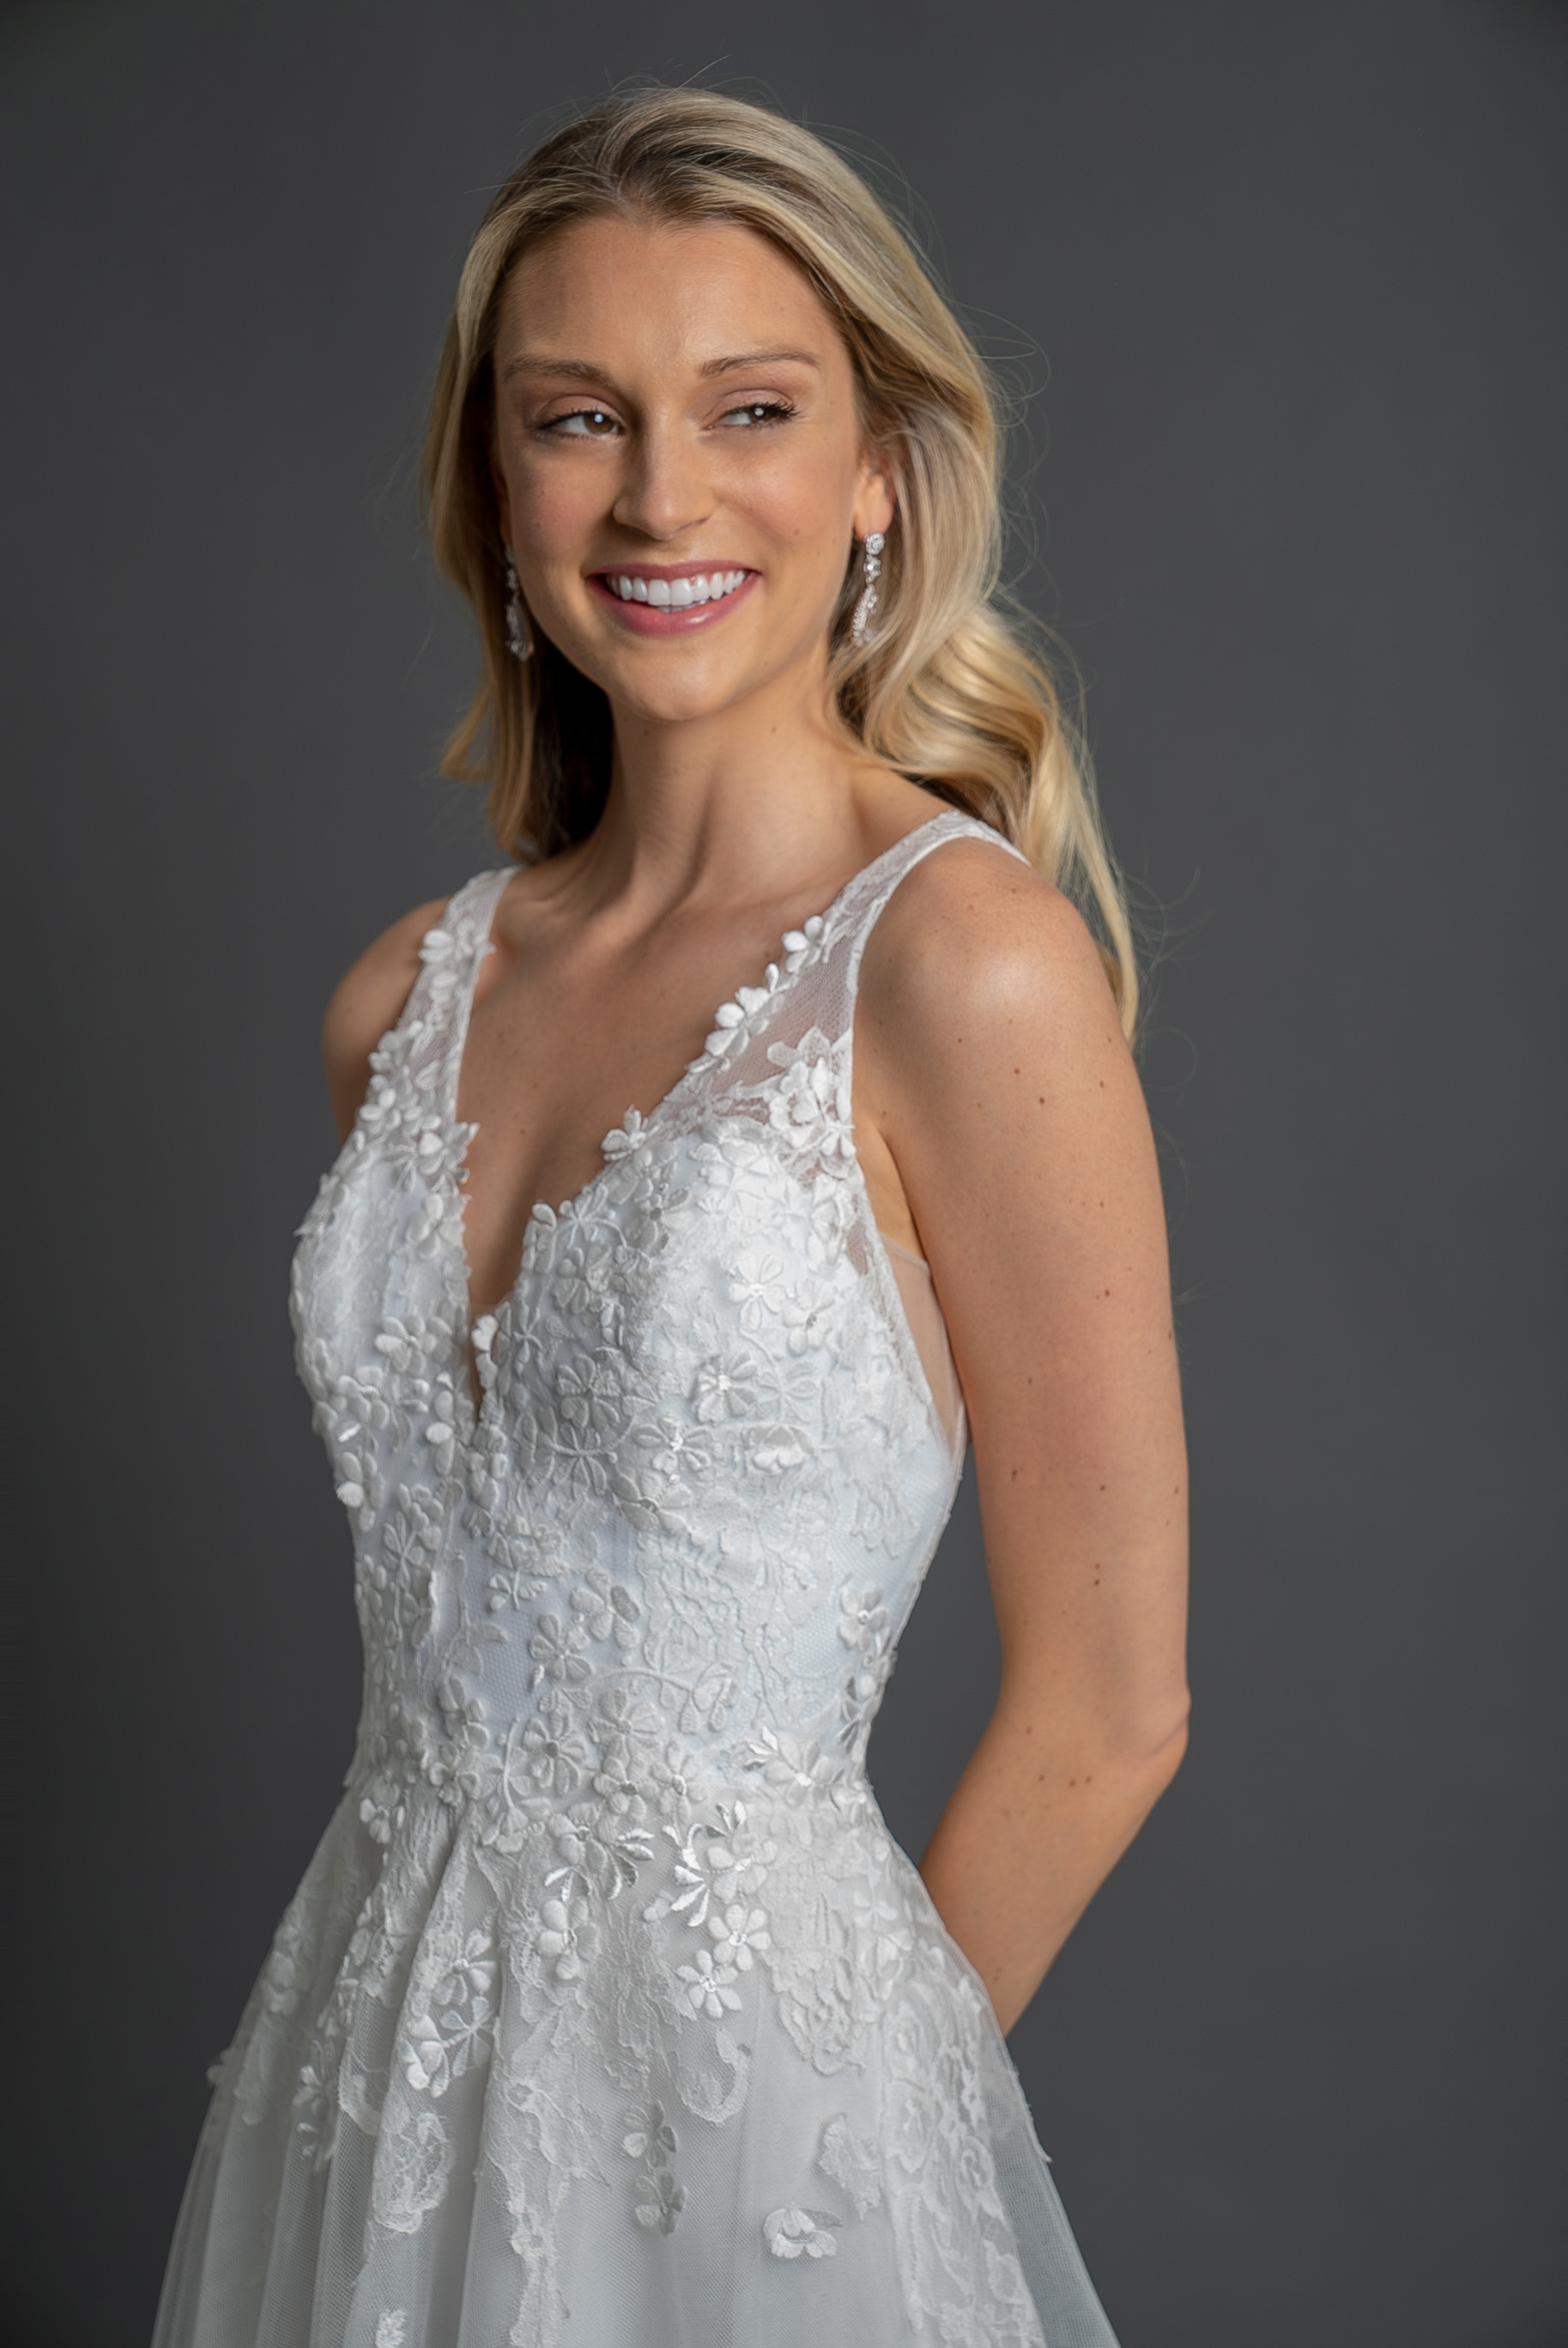 Sleeveless V-neckline embroidered wedding dress with A-line skirt by Modern Trousseau. Made in the USA by Modern Trousseau.